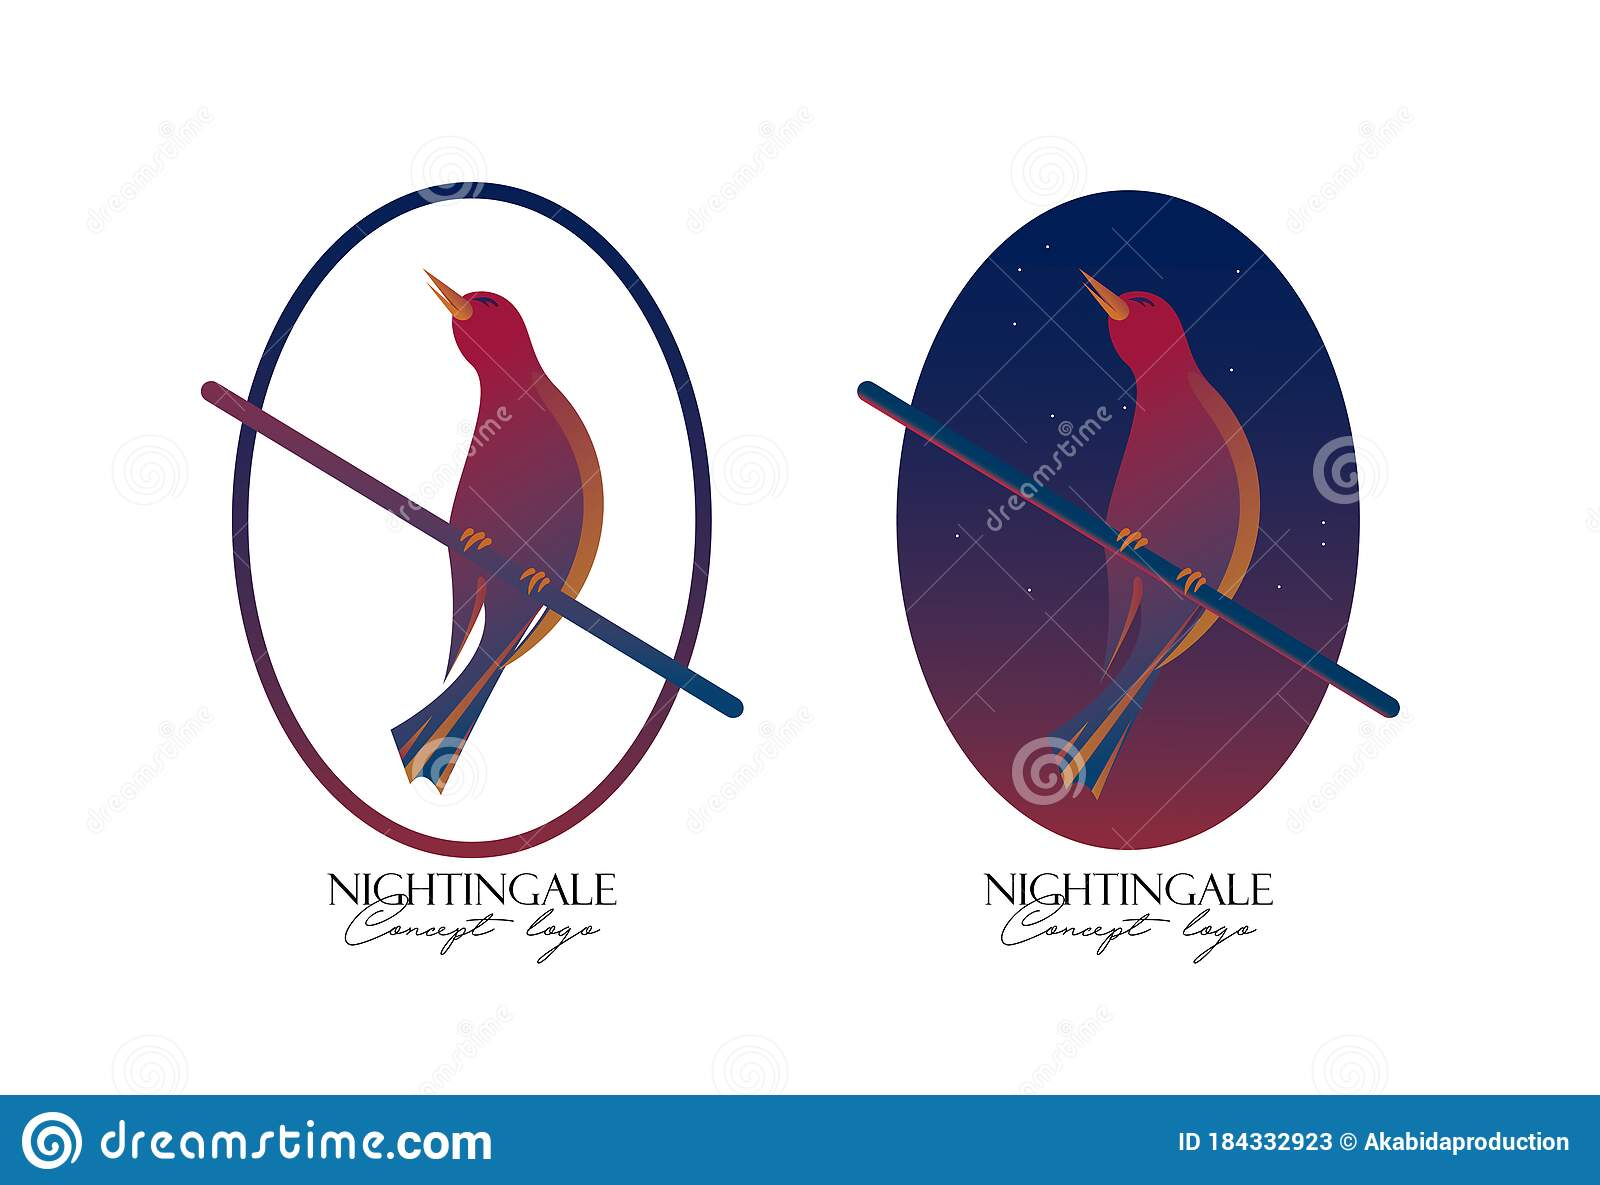 Nightingale Cartoon Vector